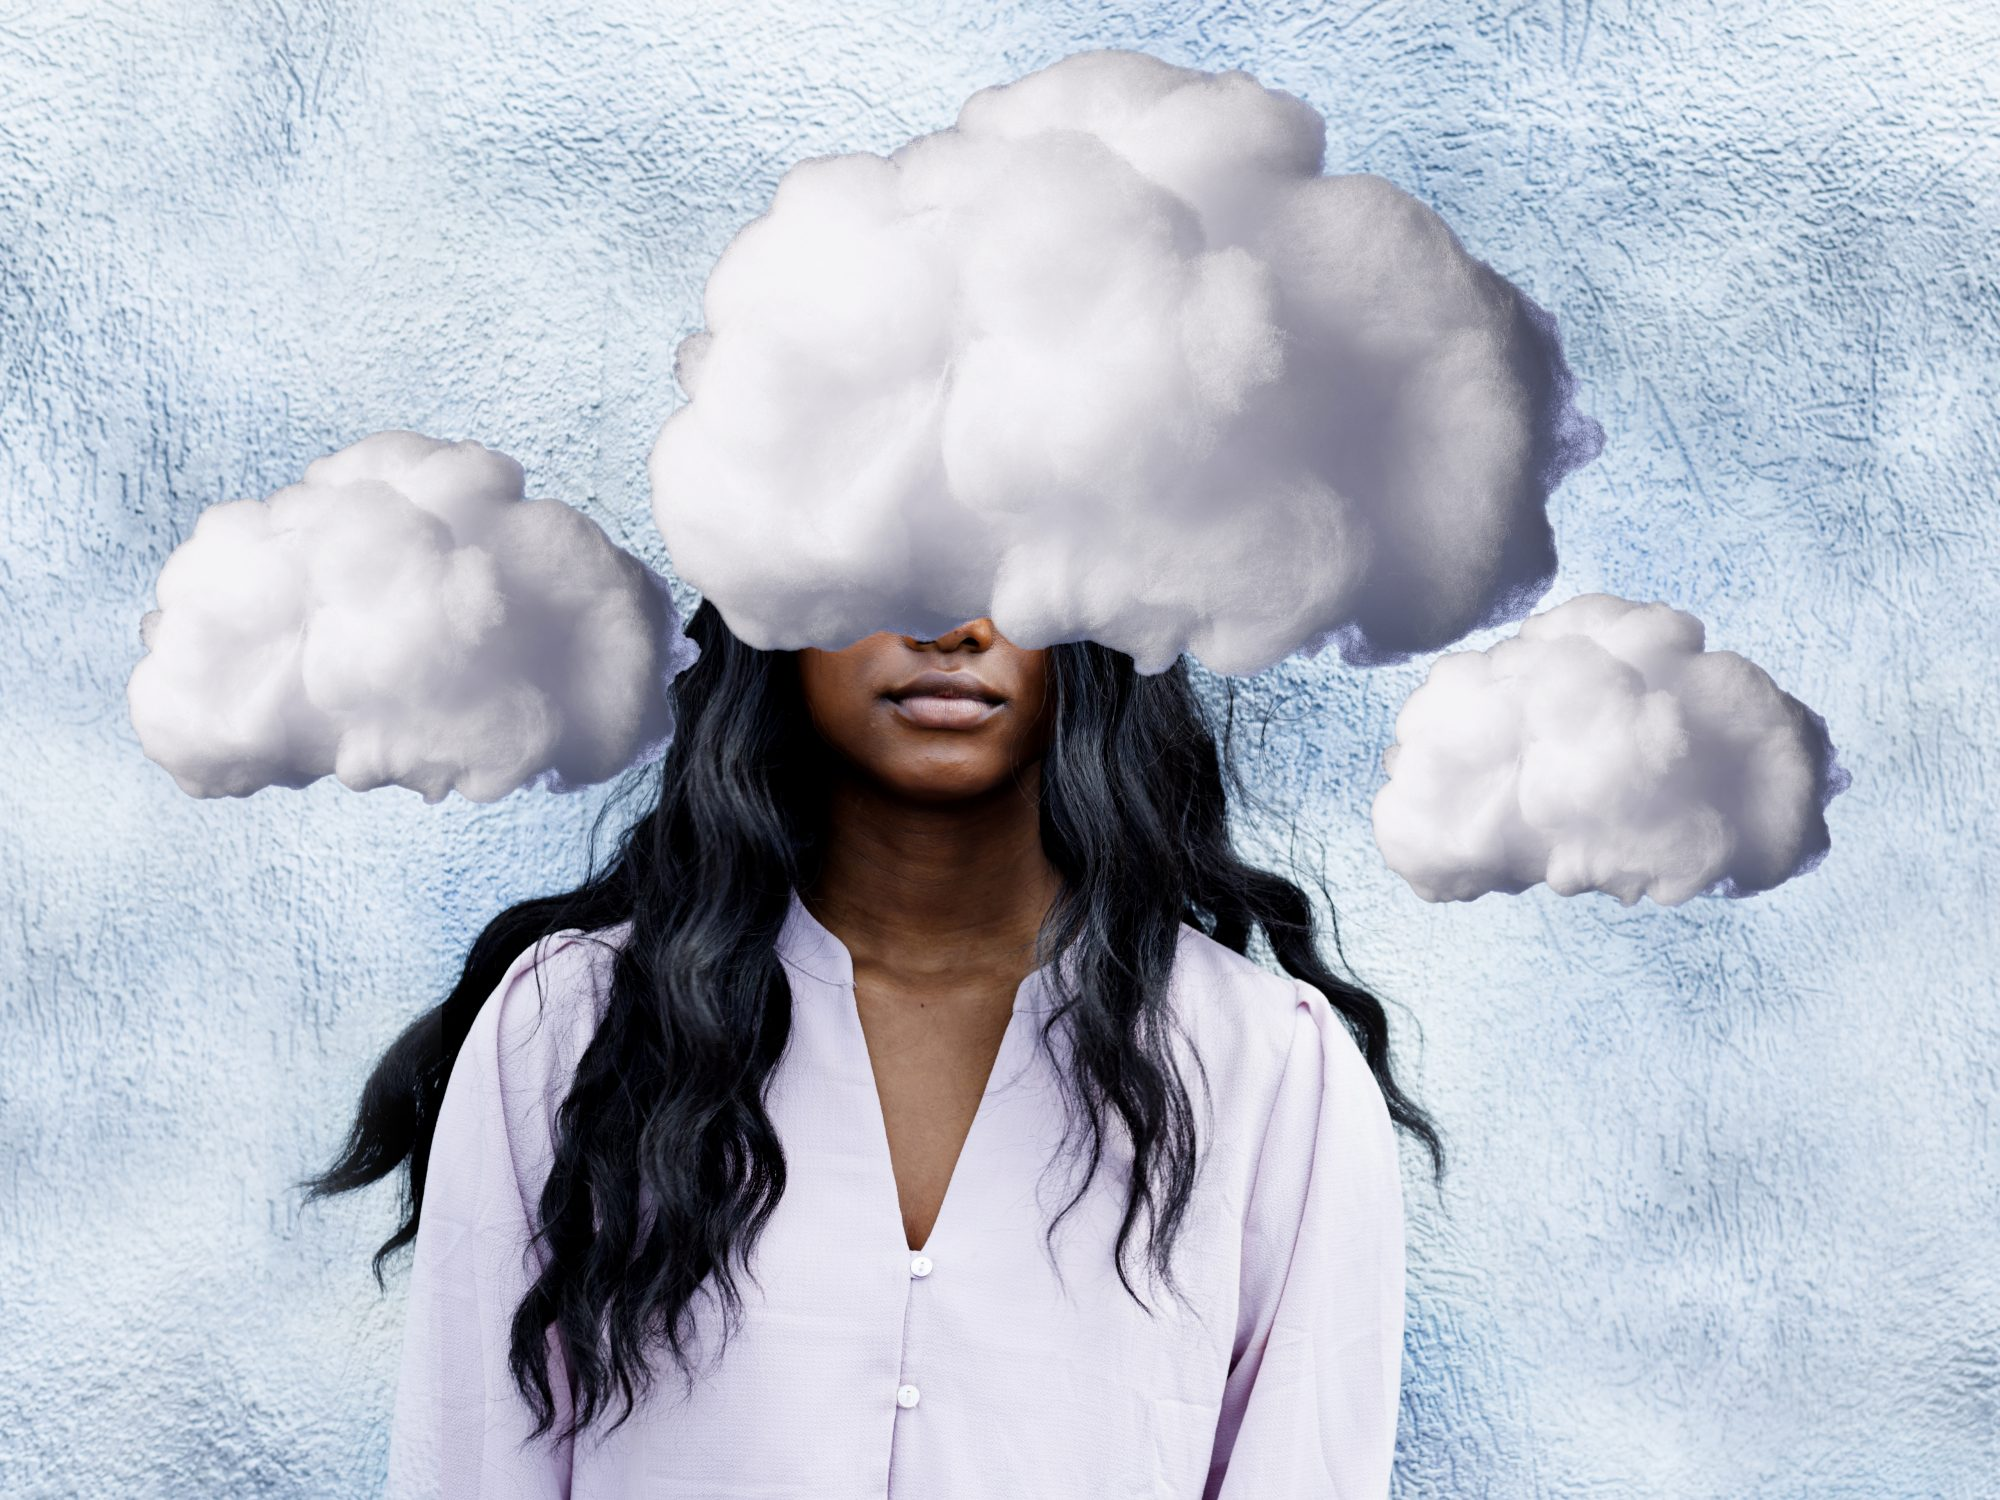 What Is Brain Fog? Brain Fog Meaning, Causes, and Fixes: clouds covering woman's face